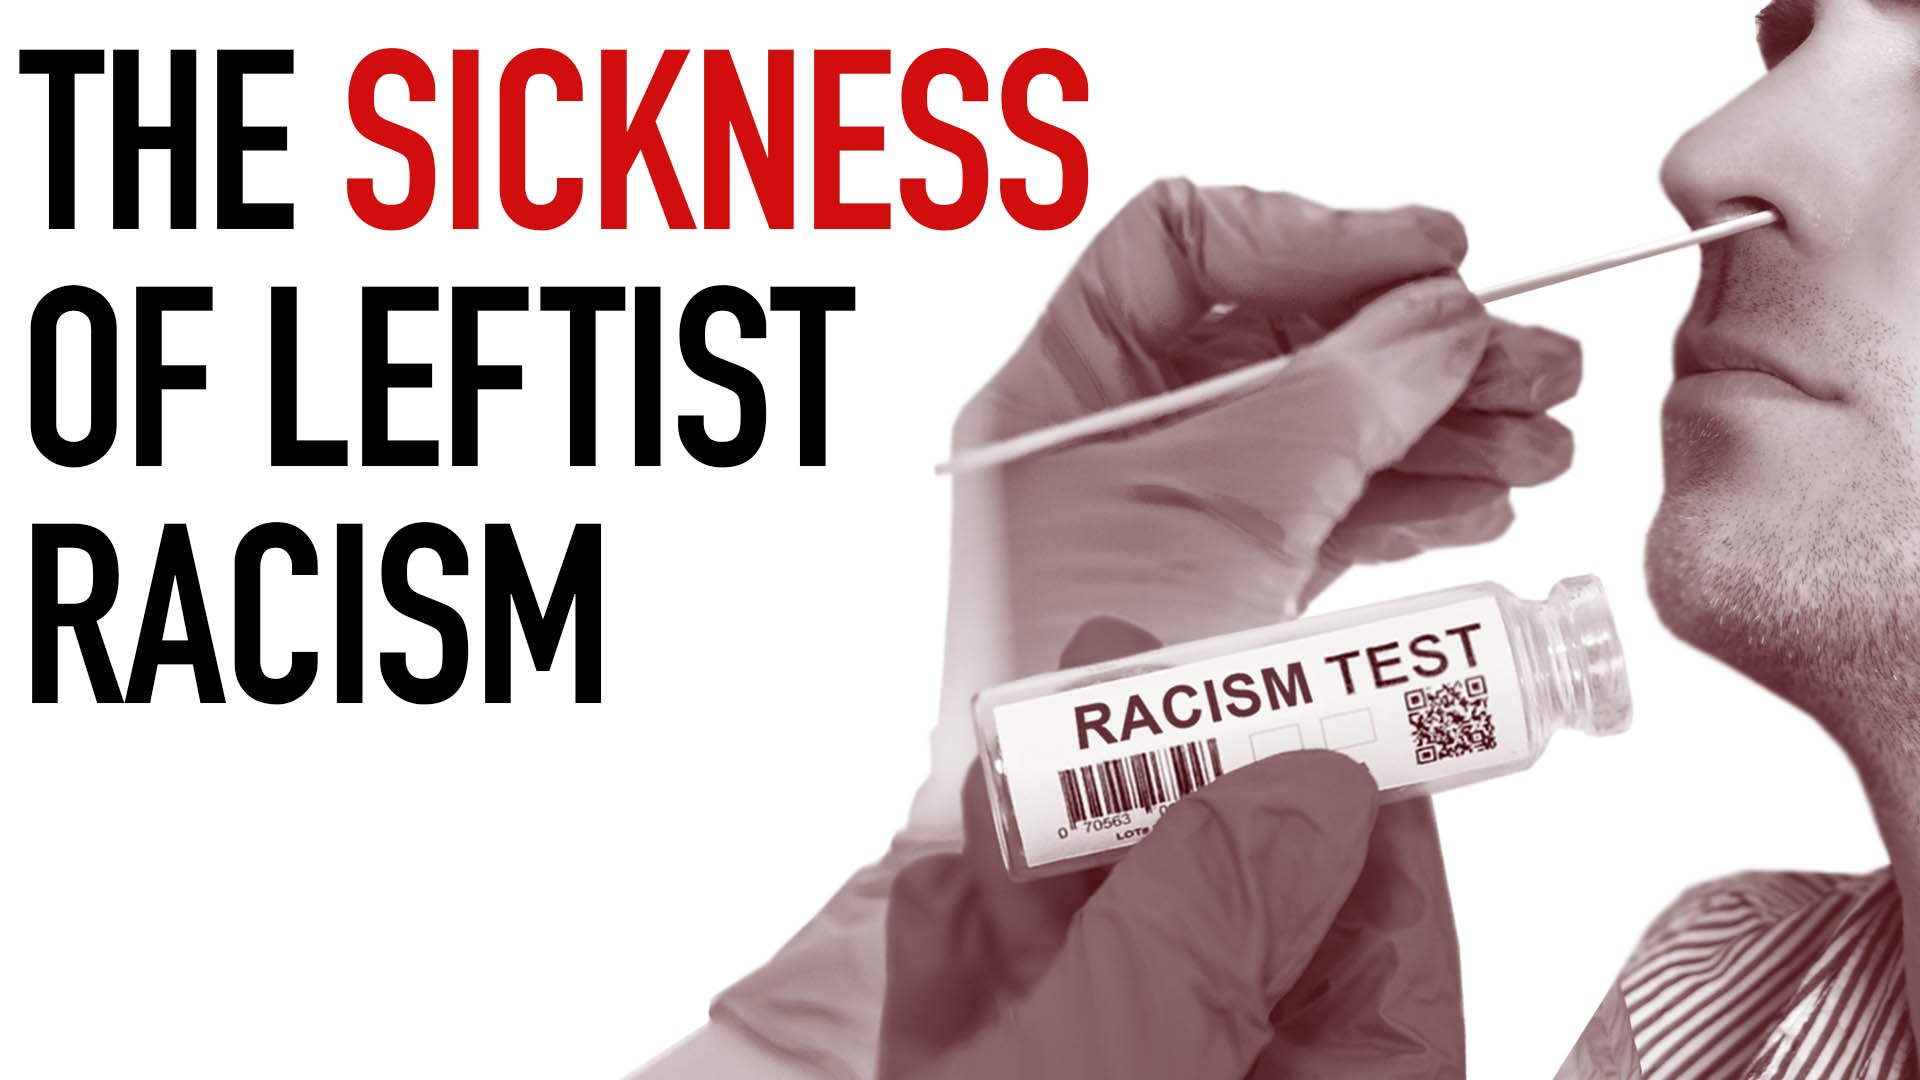 Ep. 1027 - The Sickness of Leftist Racism